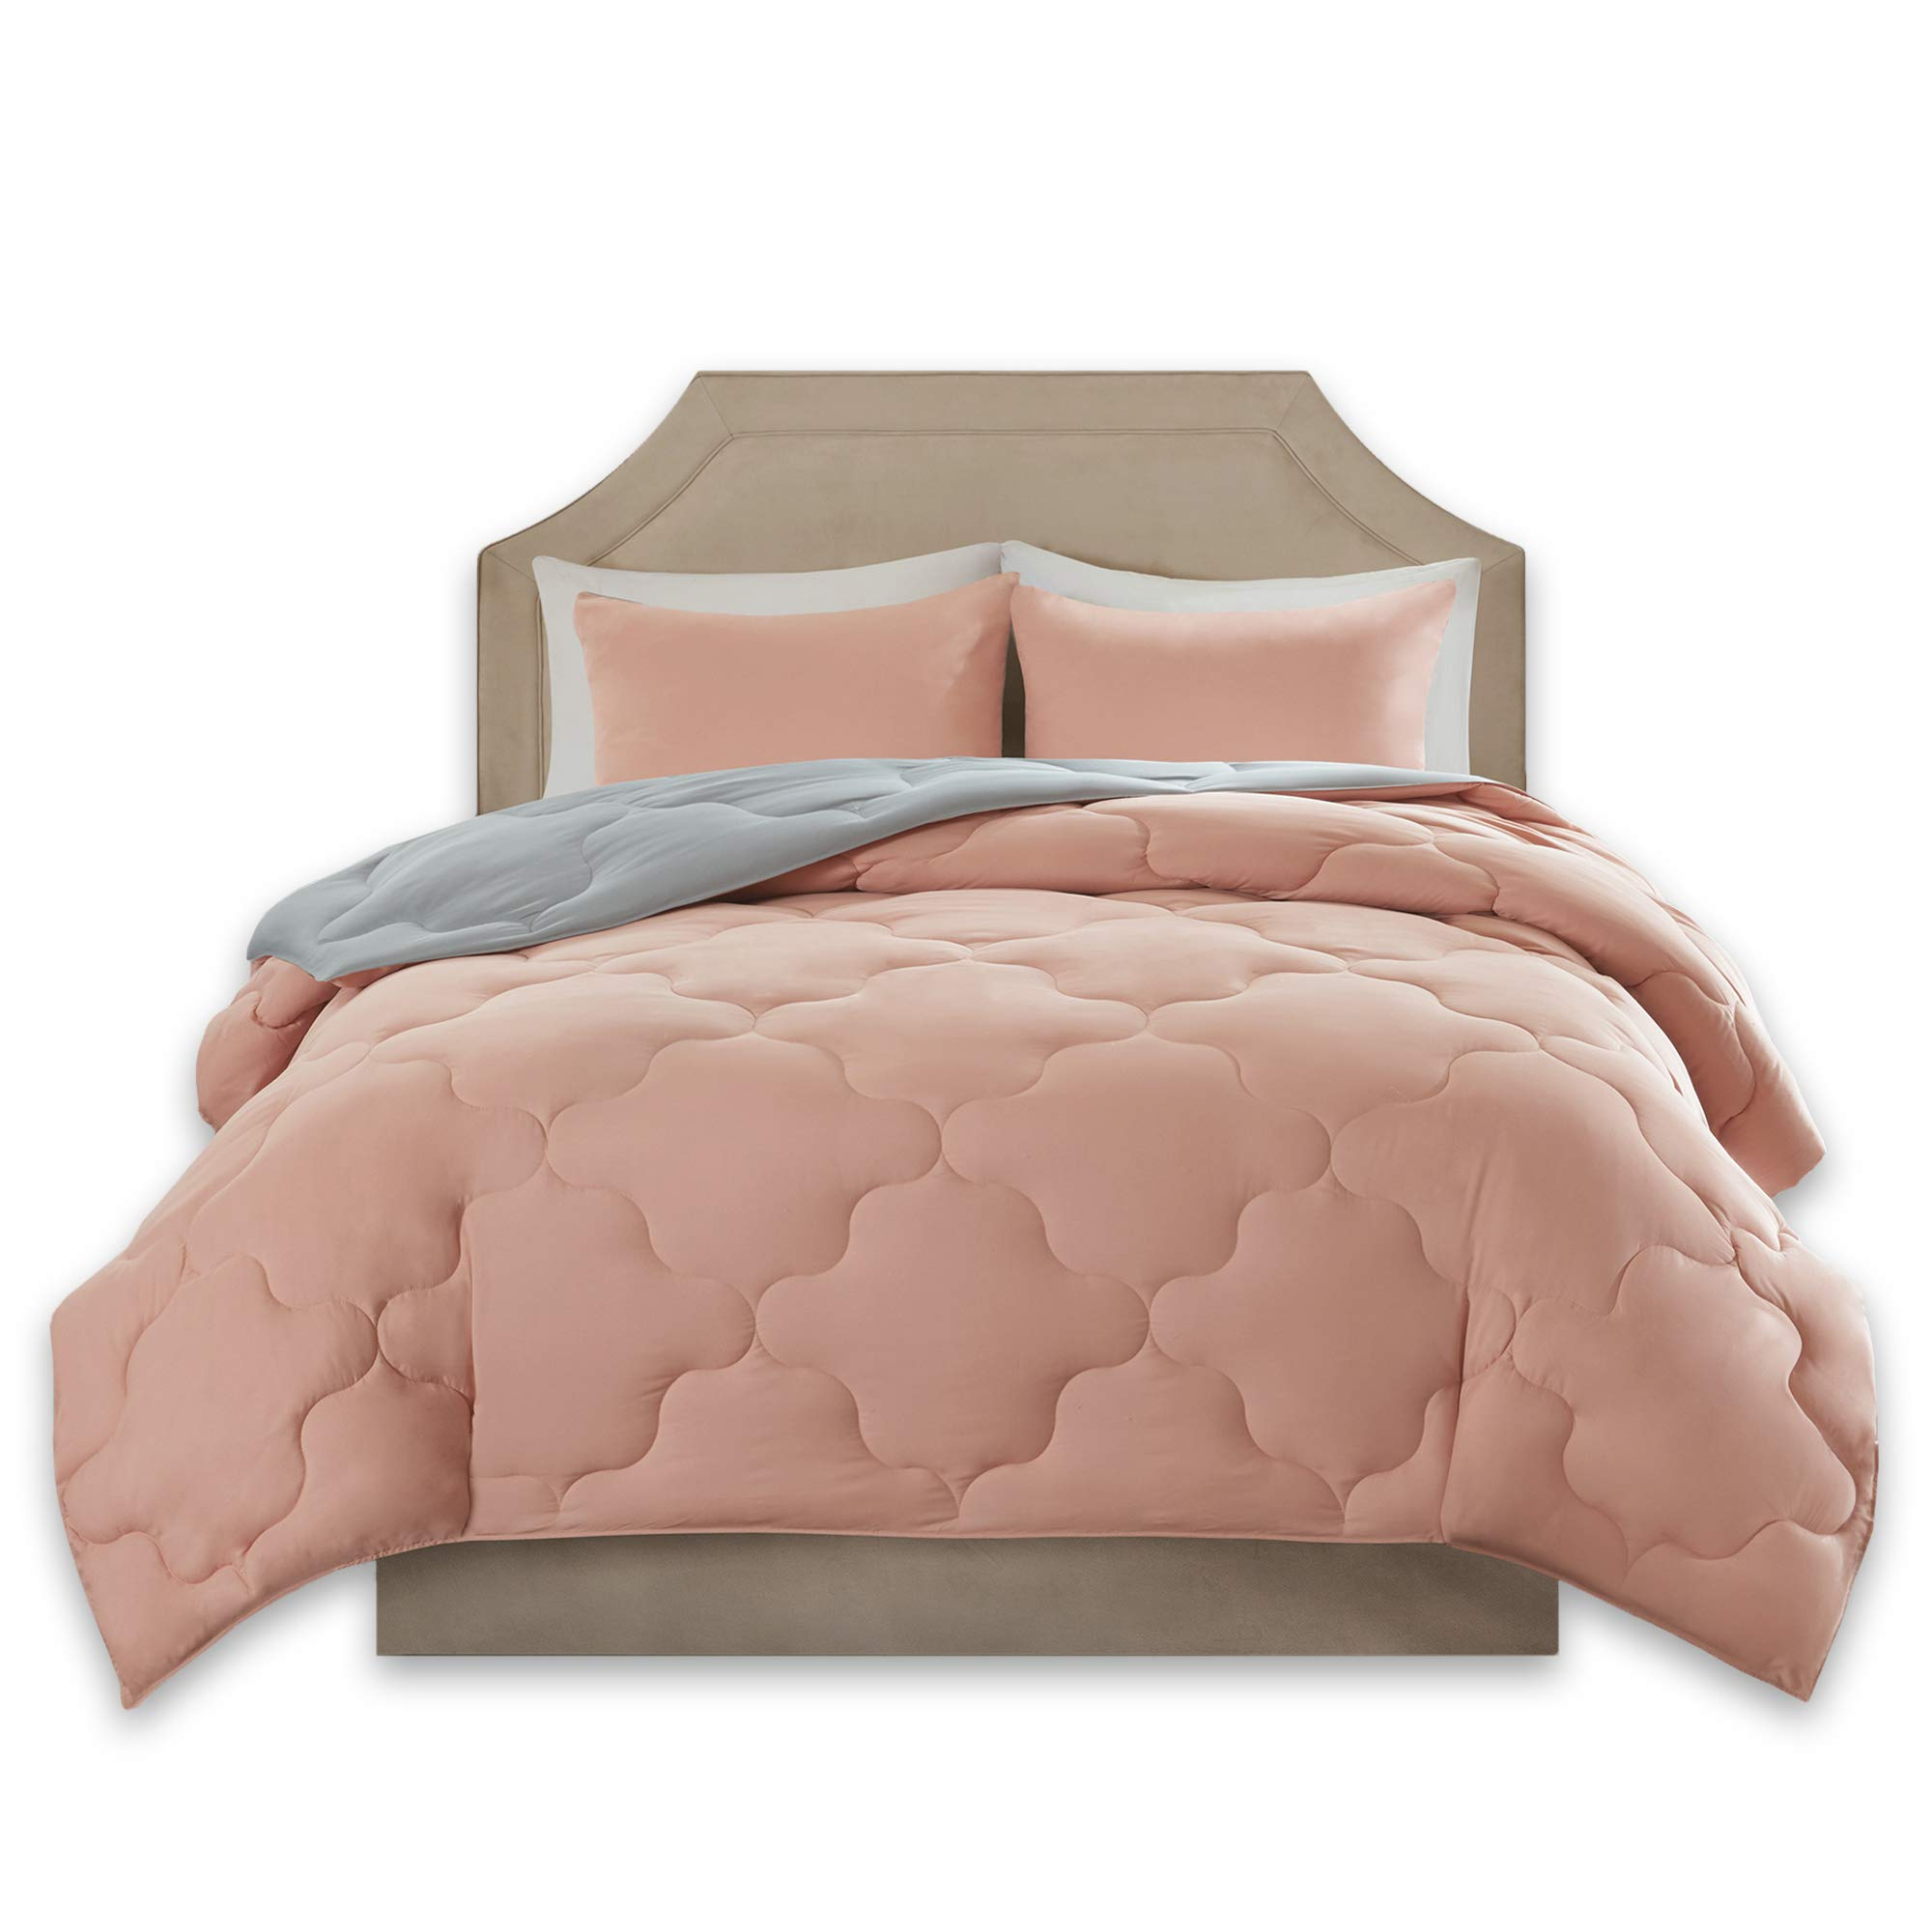 Comfort Spaces – Vixie Reversible Goose Down Alternative Comforter Mini Set - 3 Piece – All Season – Coral and Grey – Full/Queen Size, Includes 1 Comforter, 2 Shams